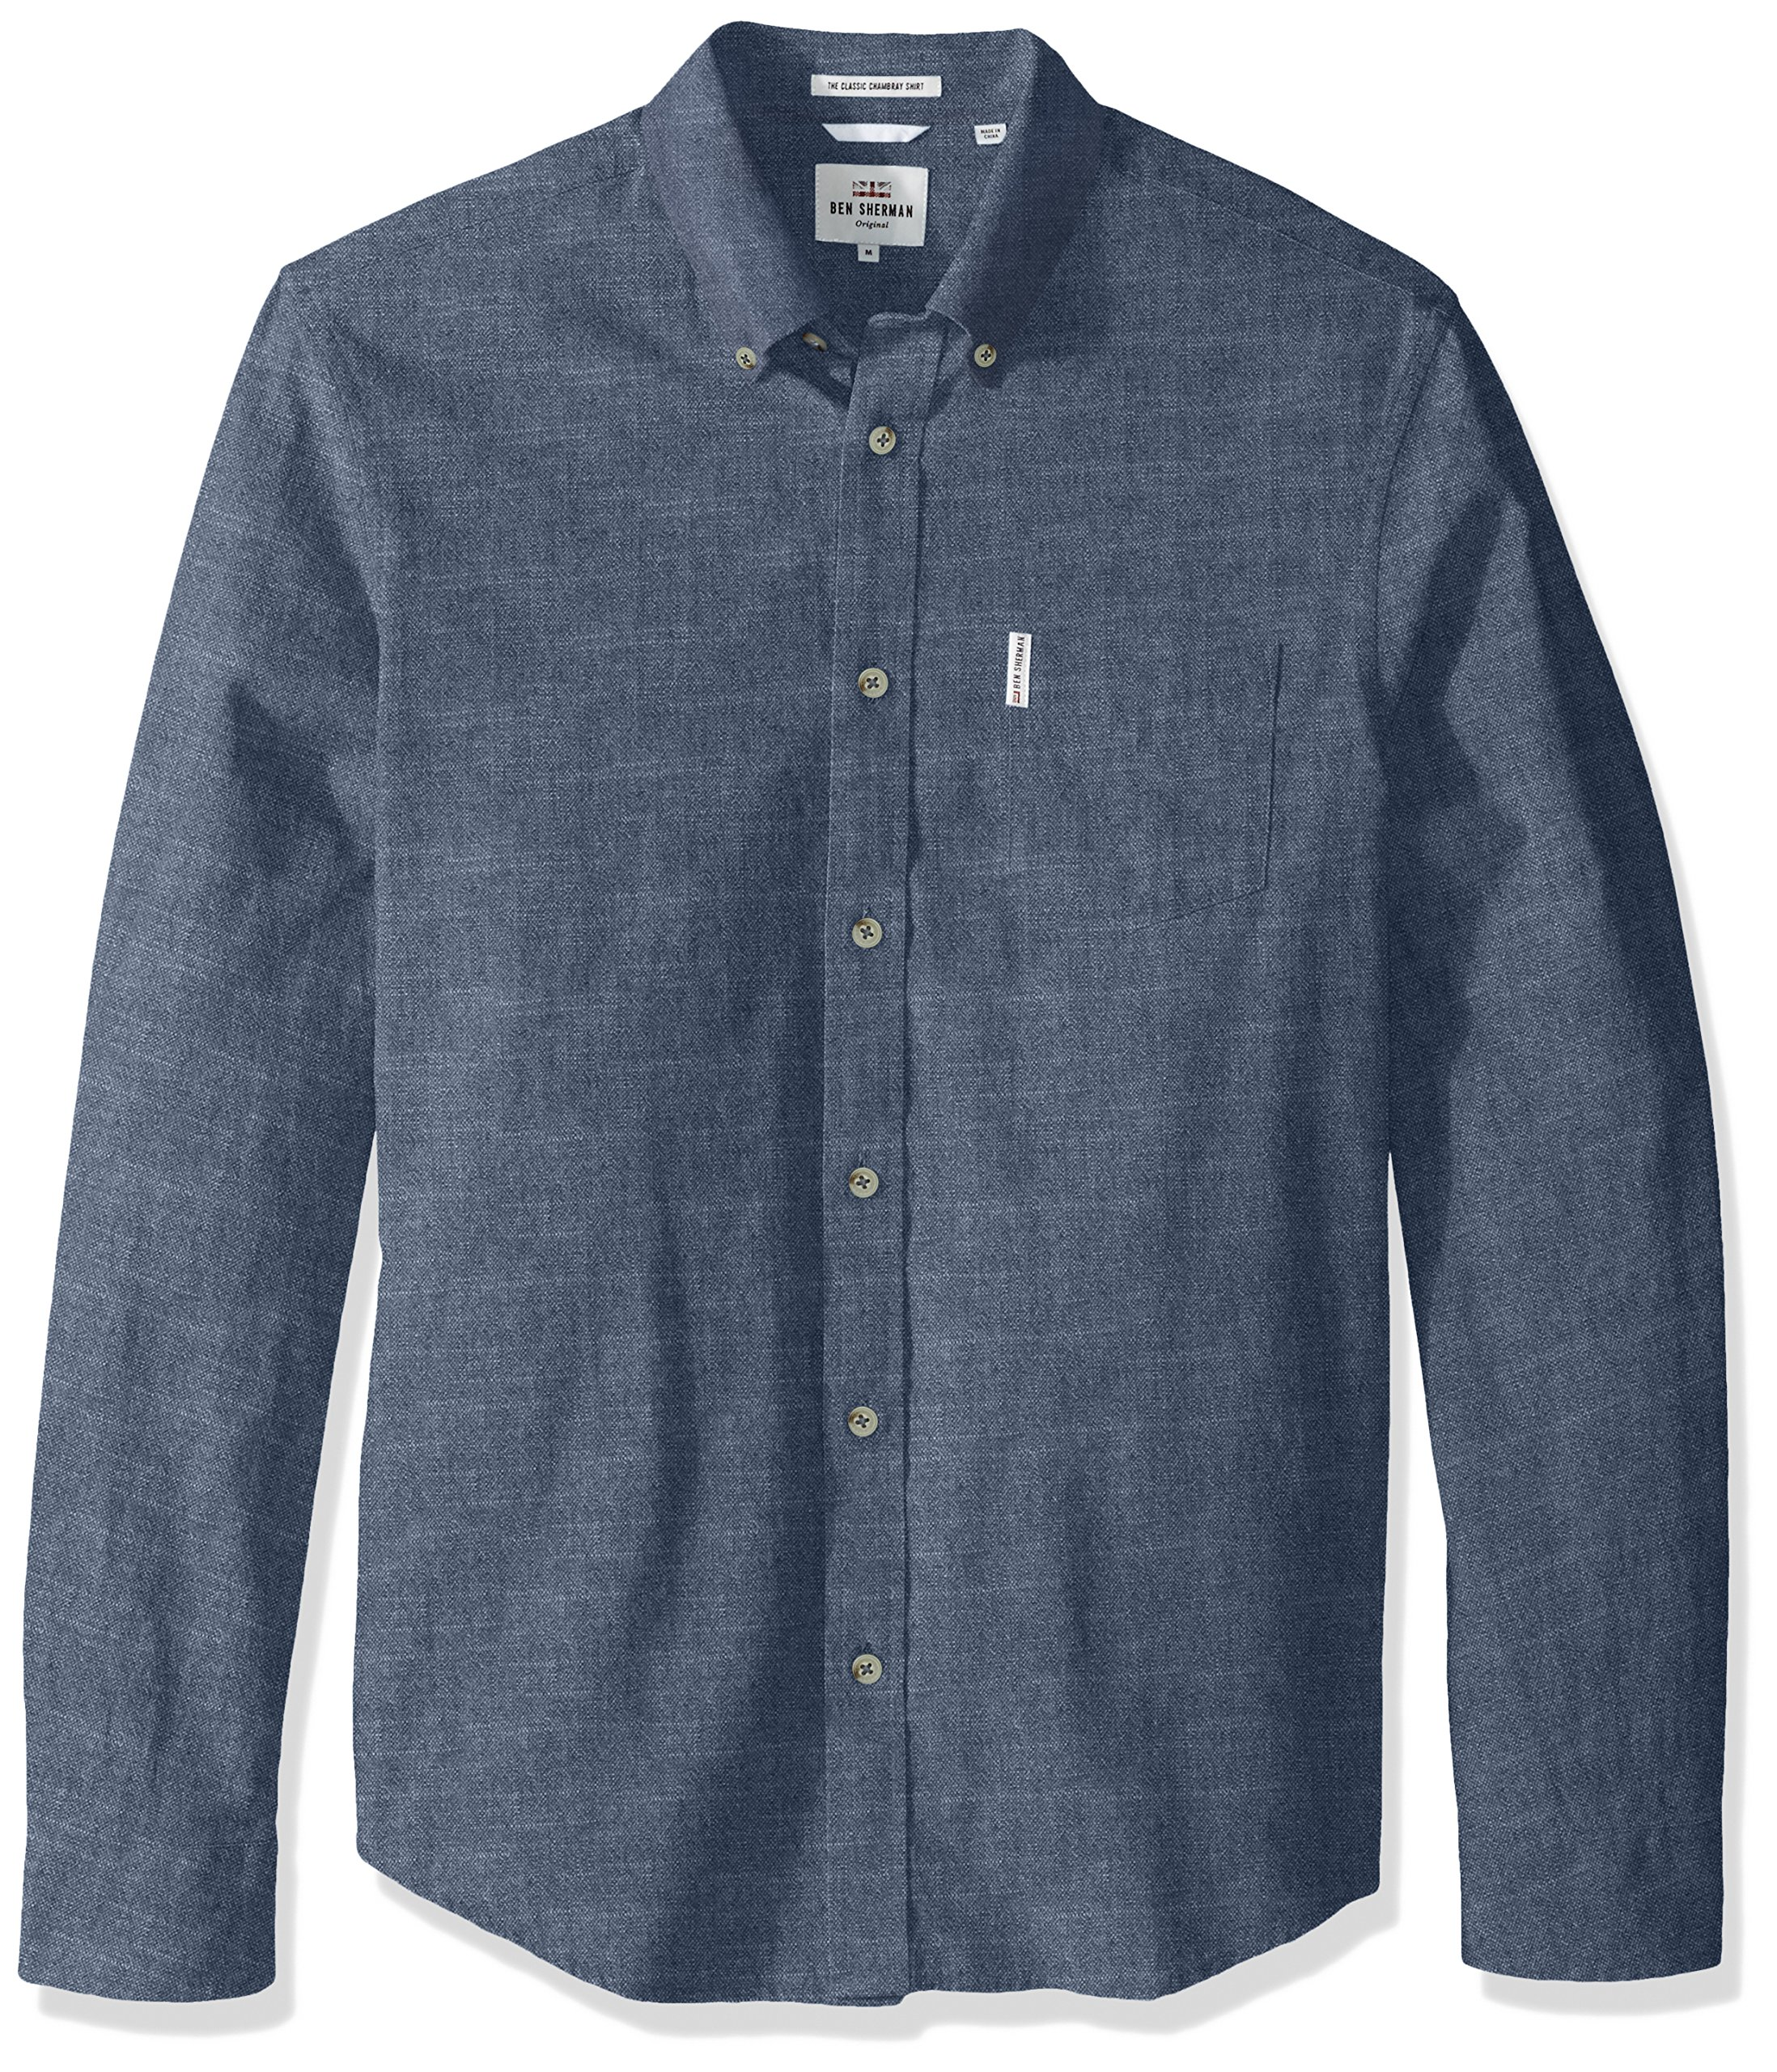 Ben Sherman Men's Longsleeve Chambray Woven Shirt, Navy Blazer, XL